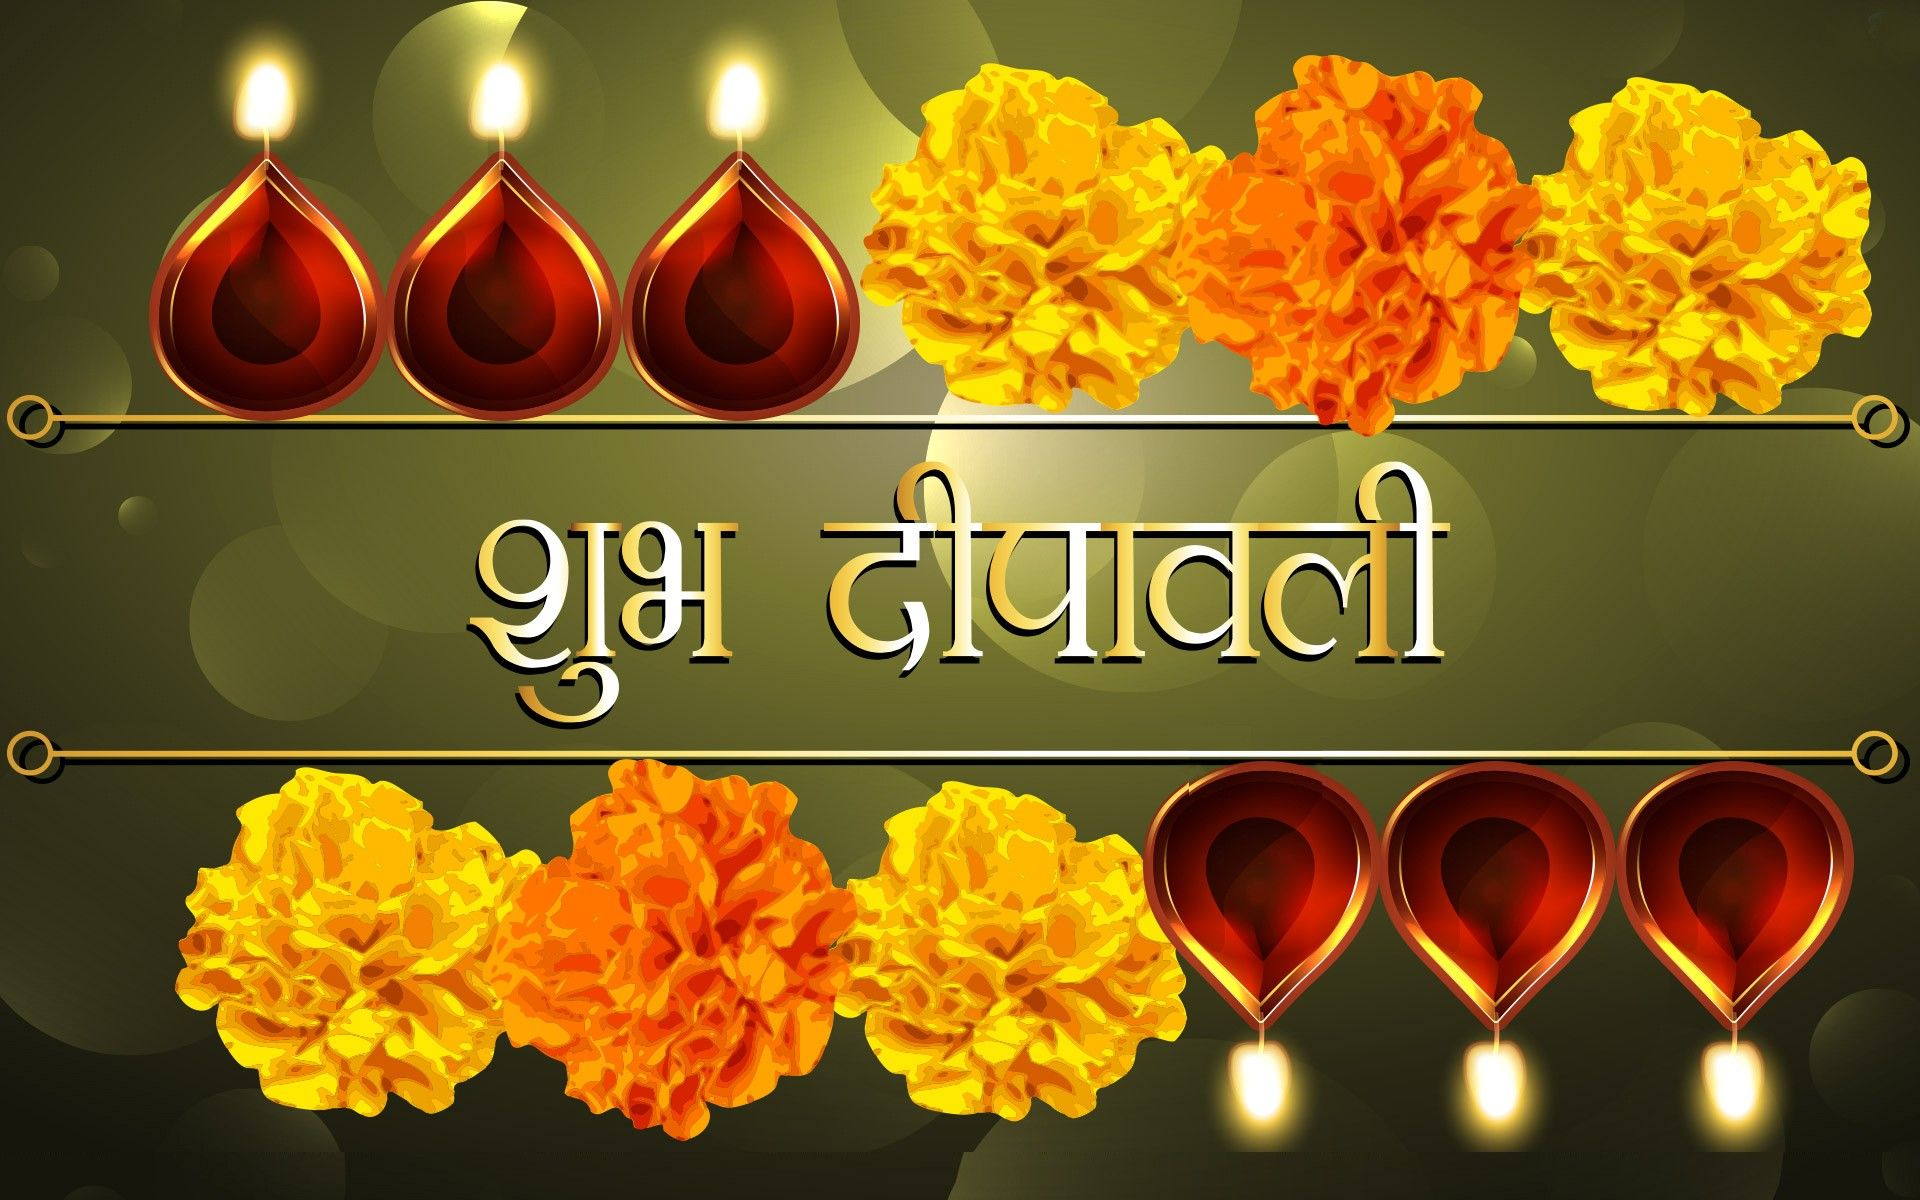 Wallpaper download diwali - Free Happy Diwali Wallpapers In Hindi For Share On Whatsapp Facebook To Friends Http